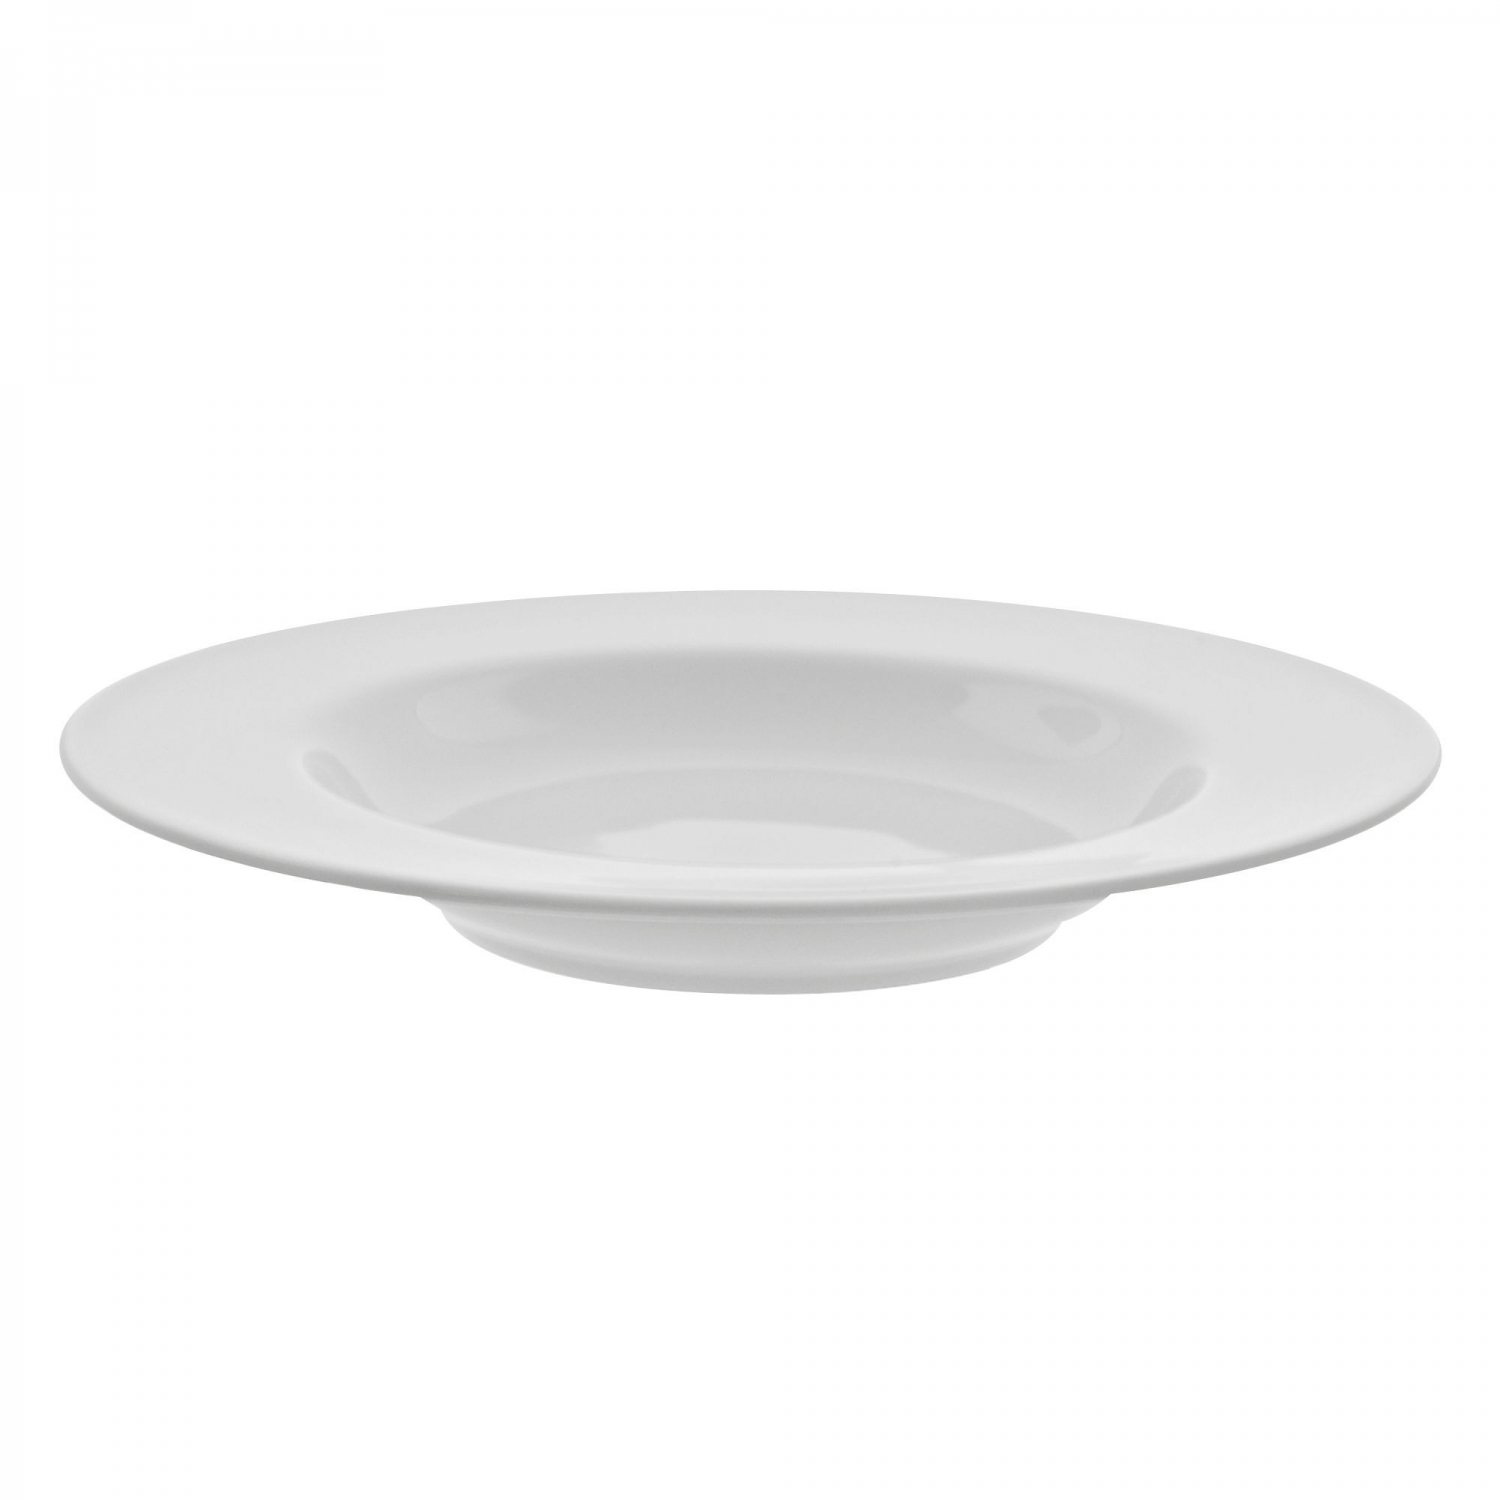 10 Strawberry Street RW0041 Royal White Rim Soup Bowl 14 oz.